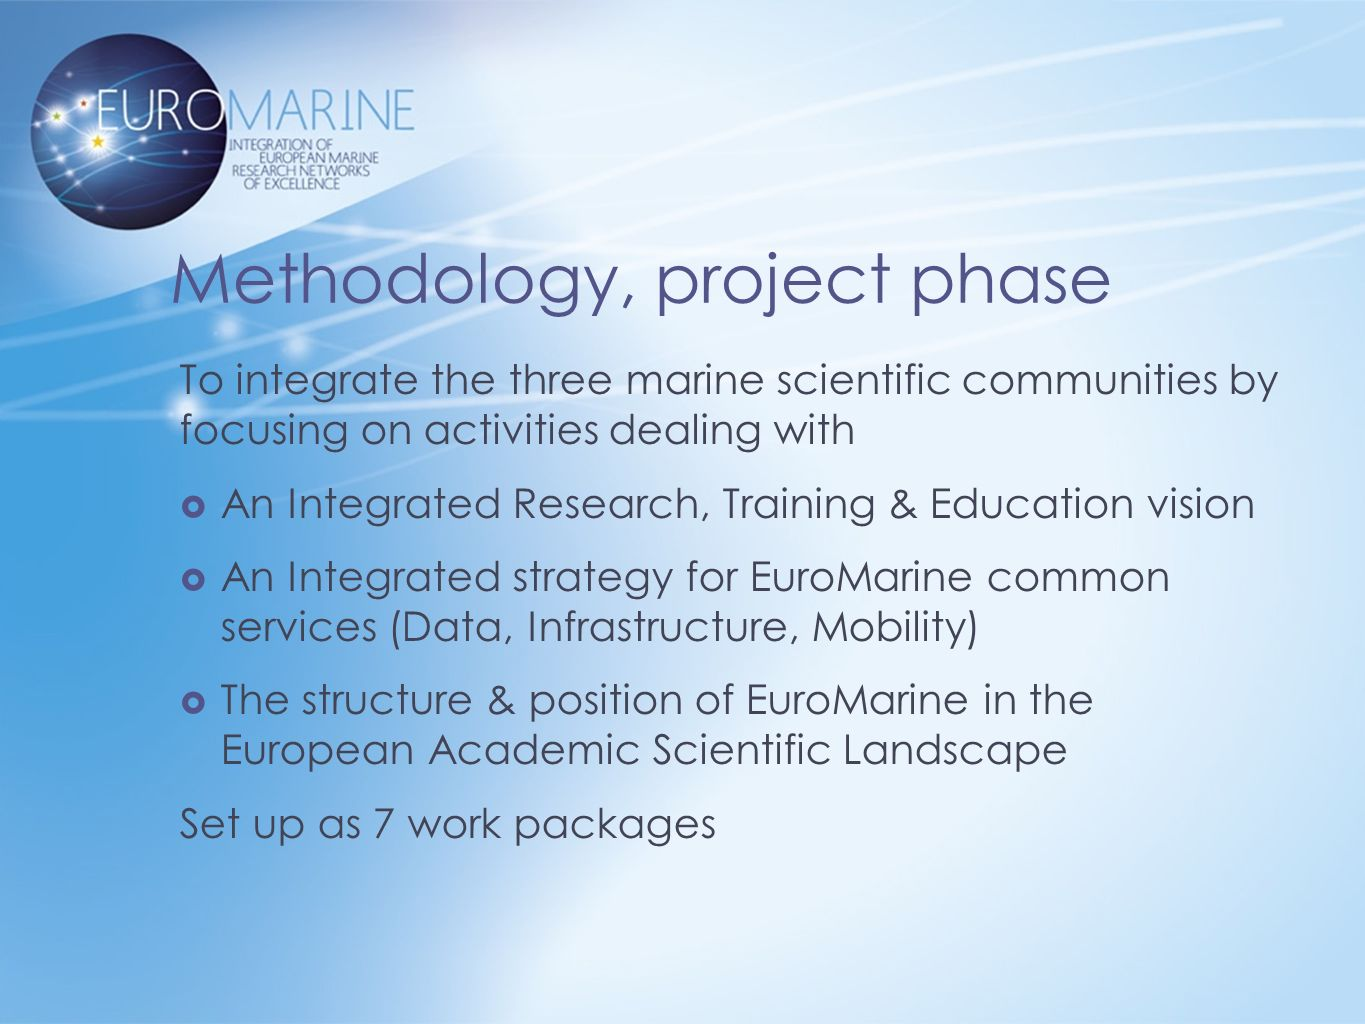 Methodology, project phase To integrate the three marine scientific communities by focusing on activities dealing with  An Integrated Research, Training & Education vision  An Integrated strategy for EuroMarine common services (Data, Infrastructure, Mobility)  The structure & position of EuroMarine in the European Academic Scientific Landscape Set up as 7 work packages